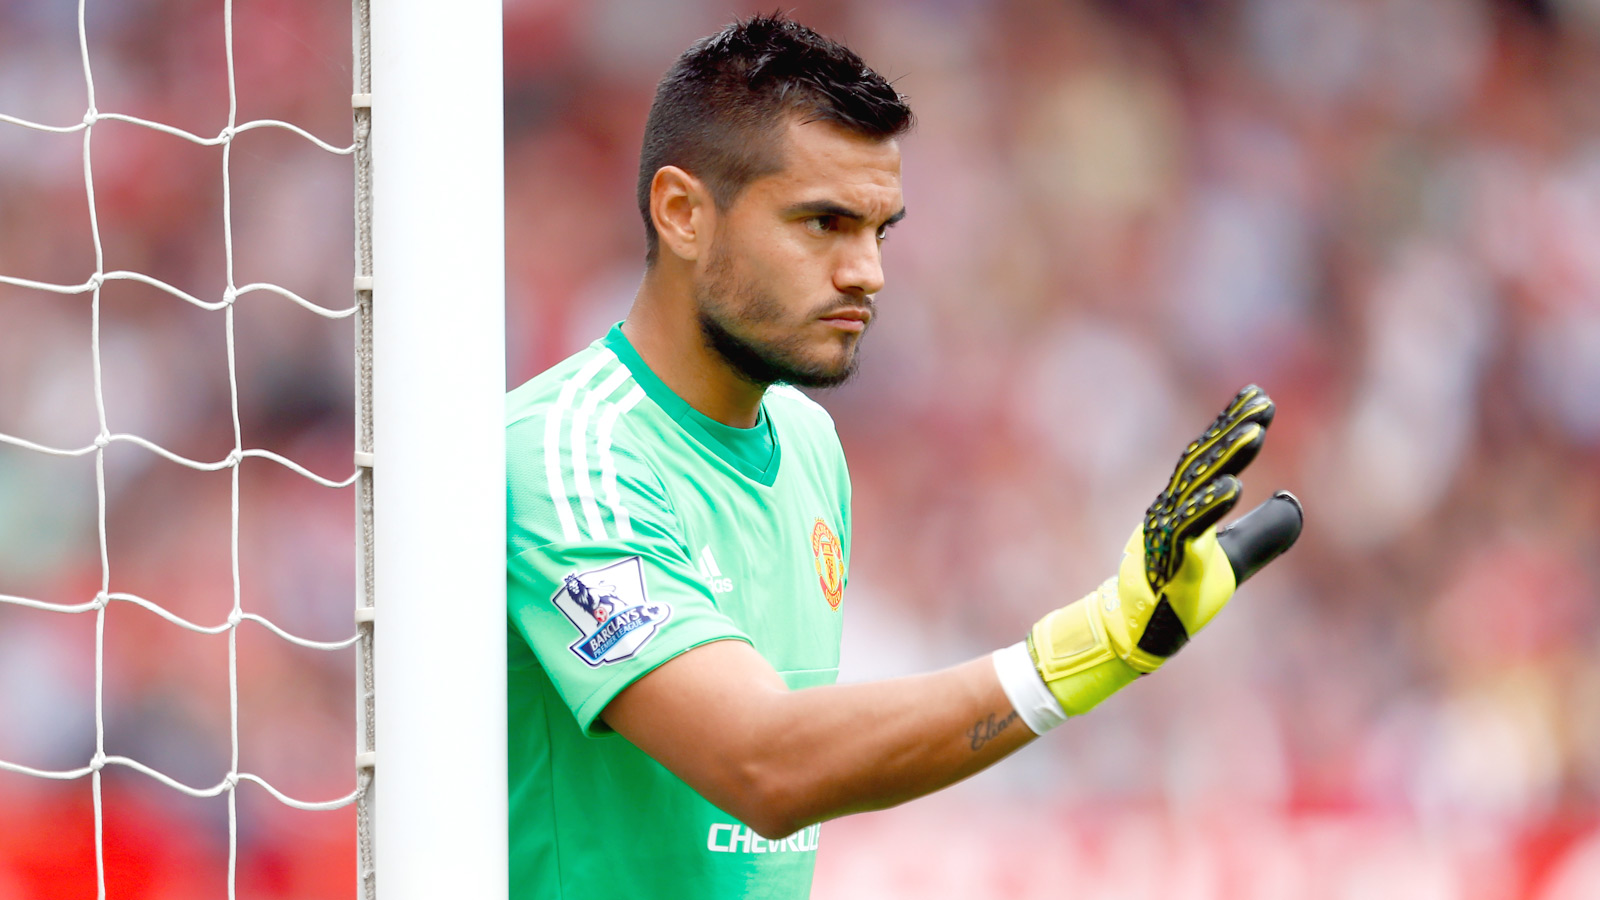 Manchester United's van Gaal remains unsure over Romero